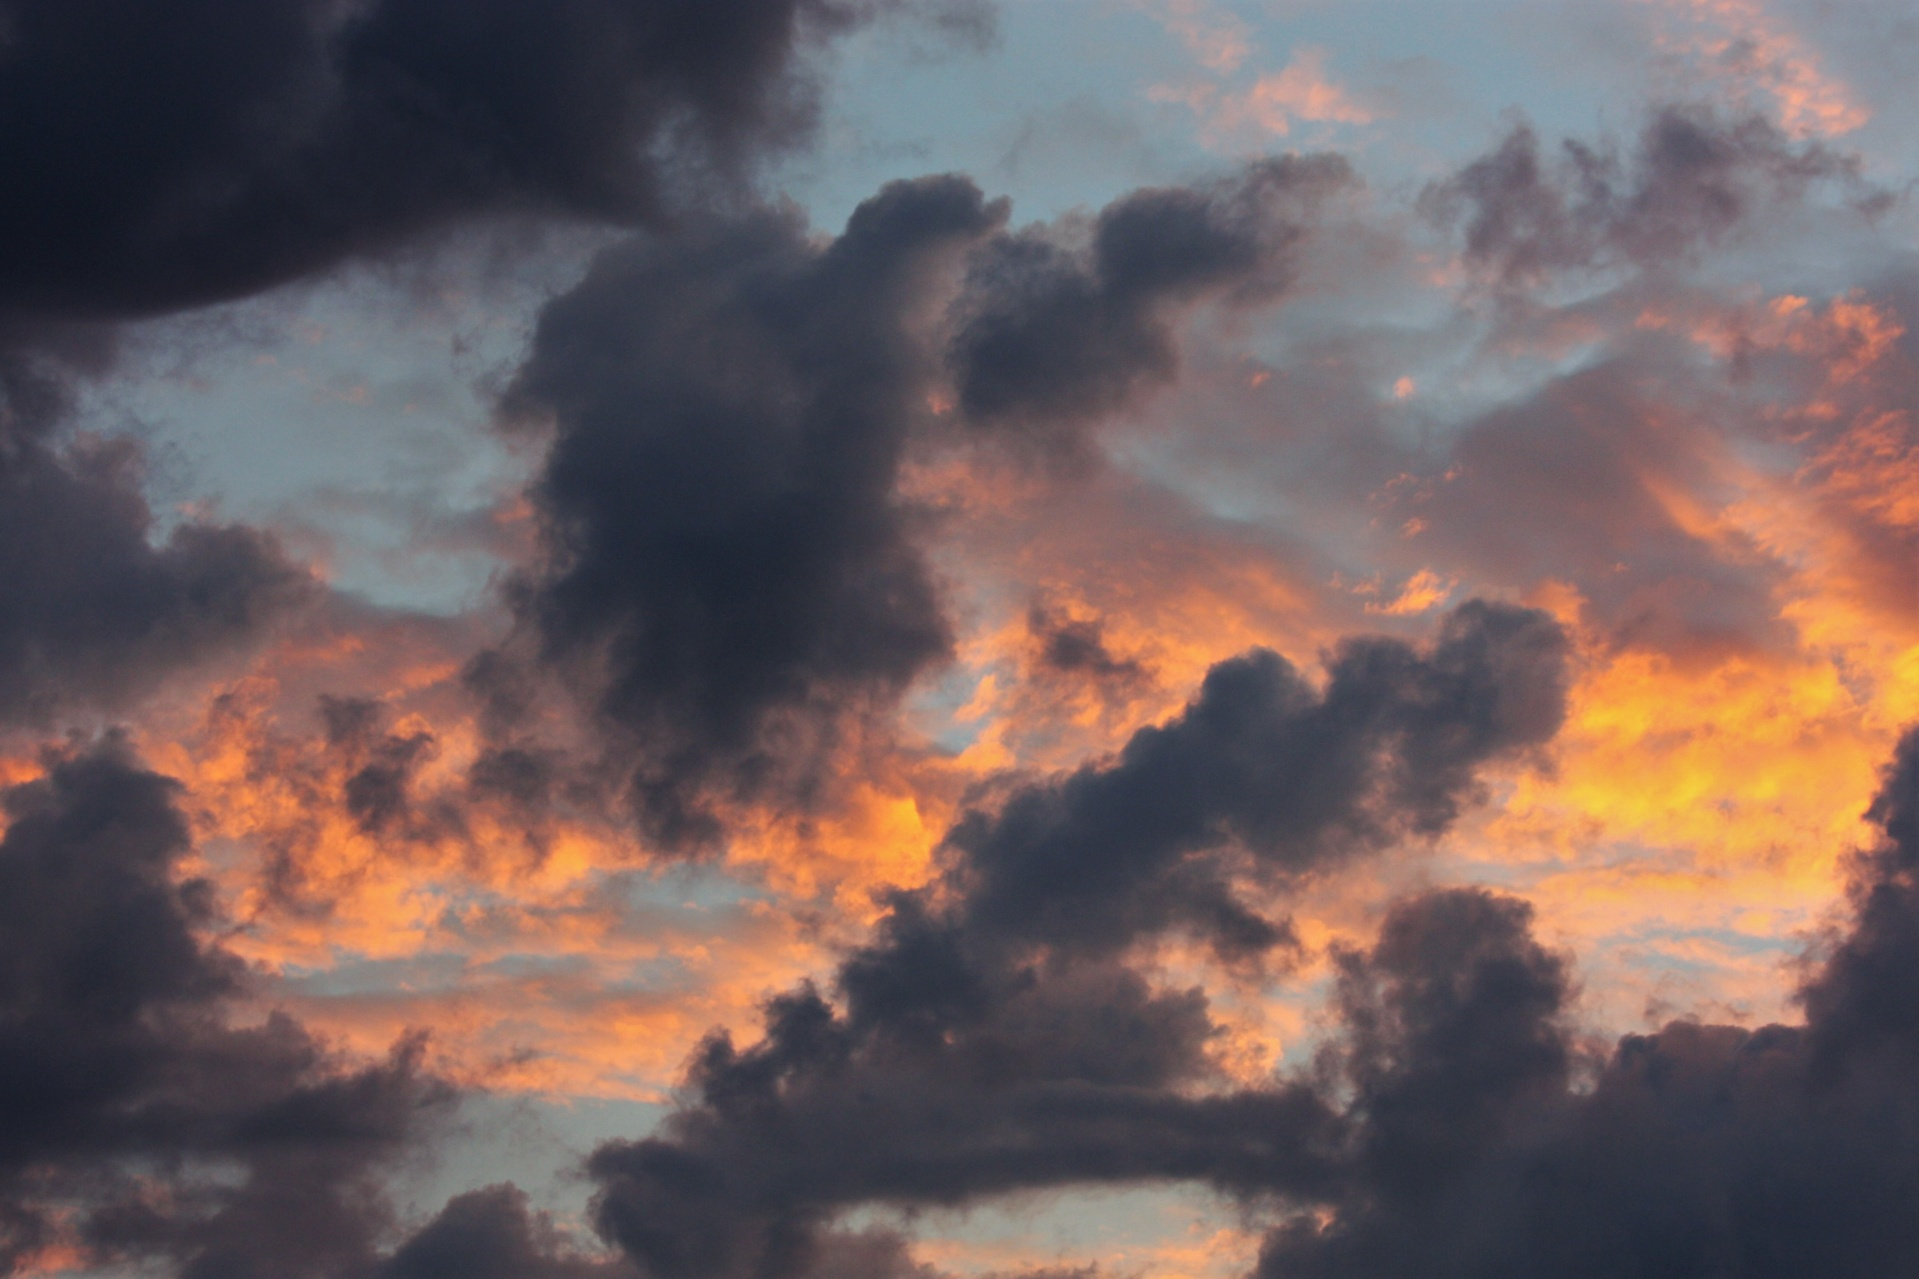 Storm Clouds At Sunrise Free Stock Photo - Public Domain Pictures